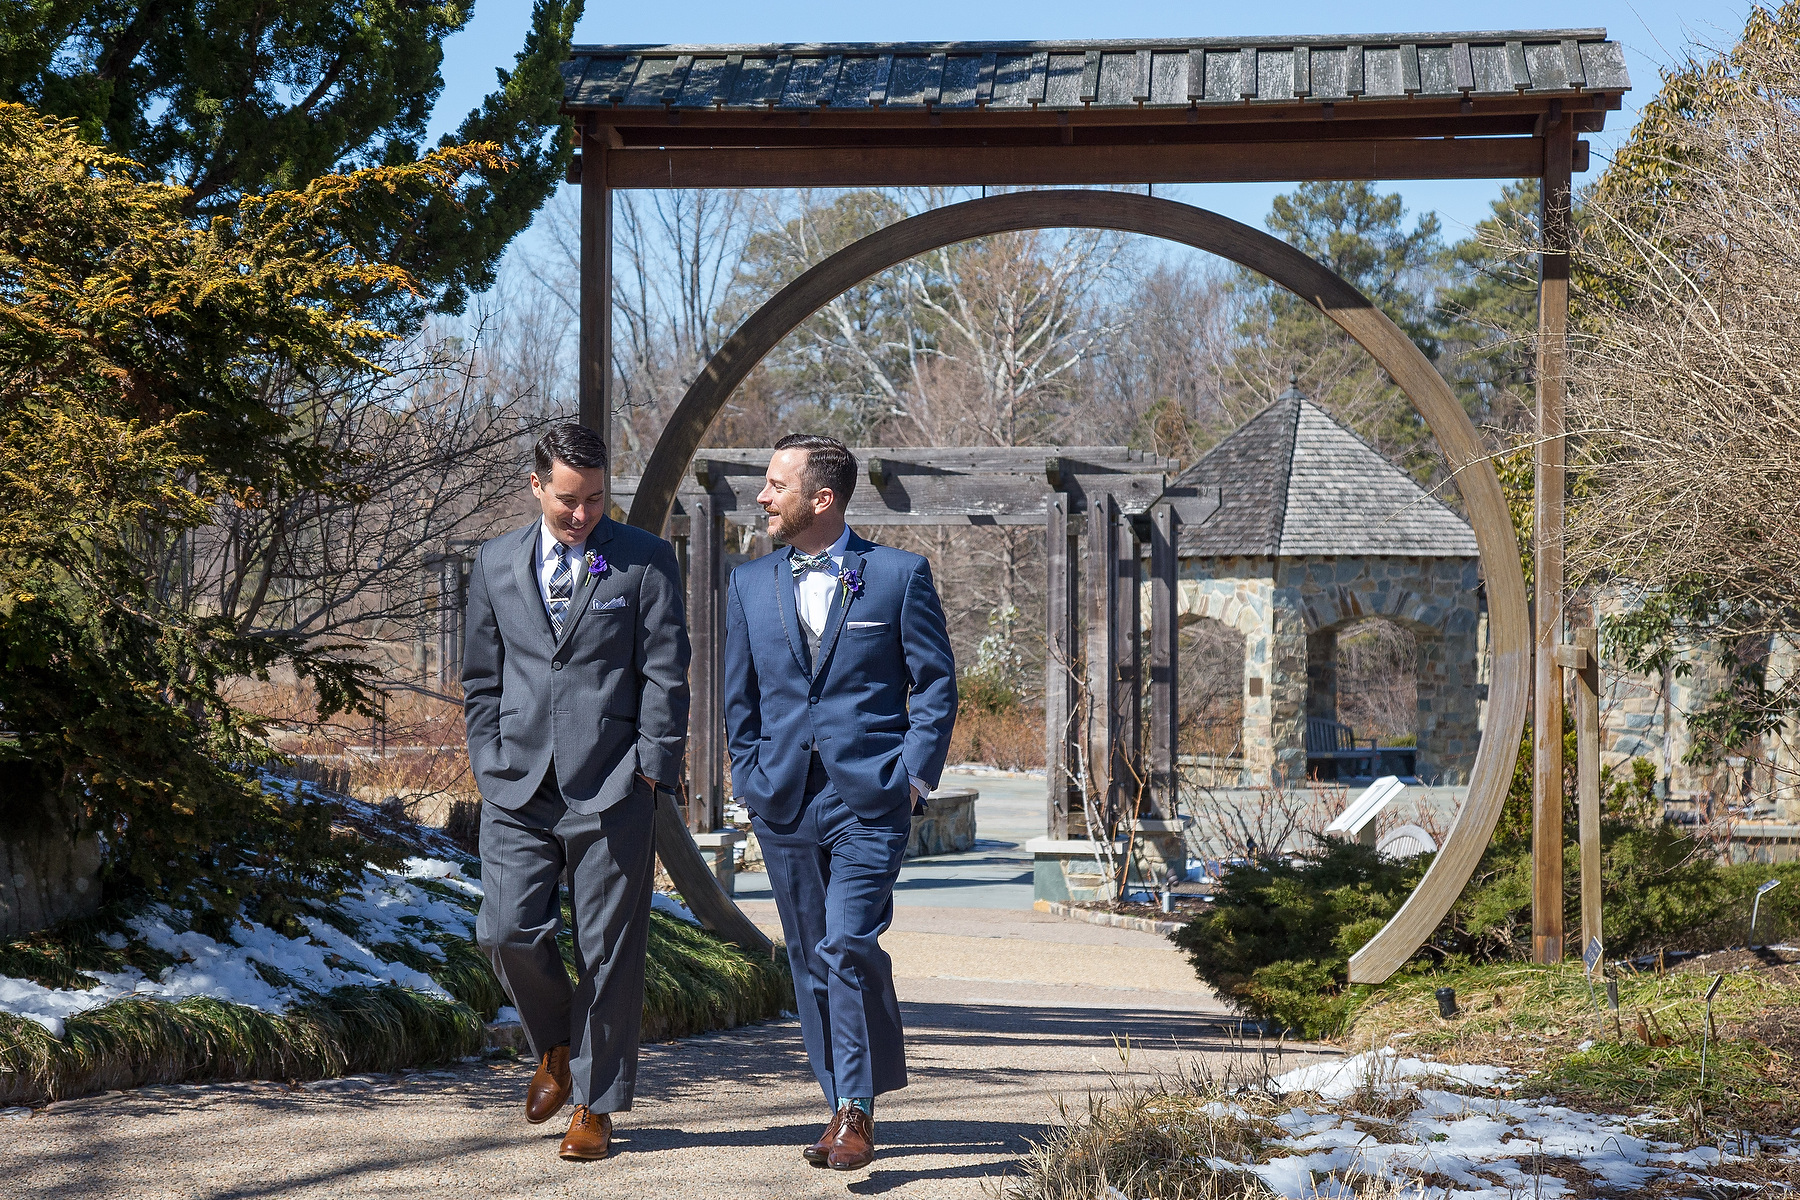 Two grooms walk to their wedding ceremony at The Lewis Ginter Botanical Garden in Richmond Va